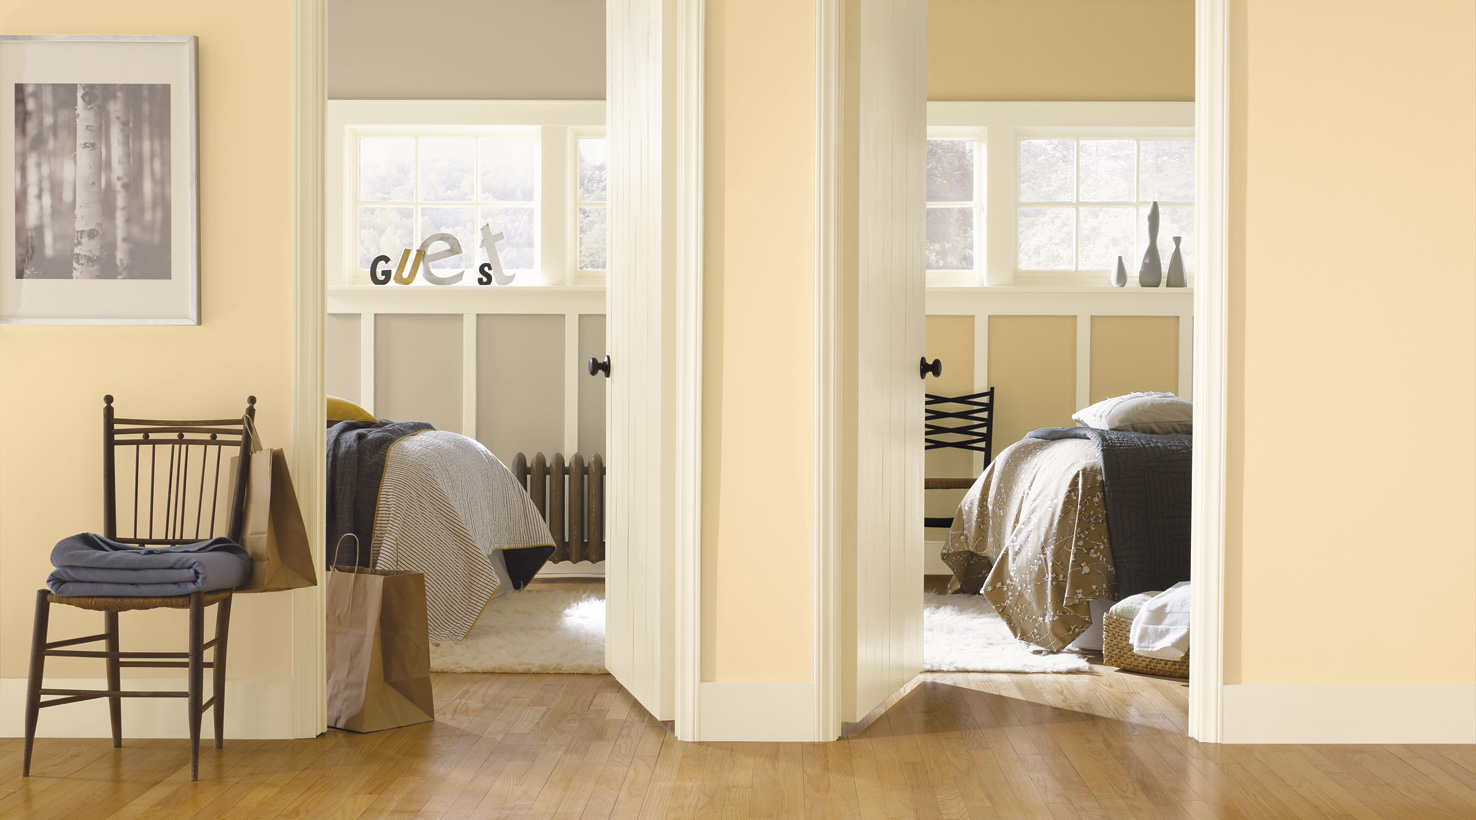 Popular Paint Colors For Bedrooms bedroom color inspiration gallery – sherwin-williams